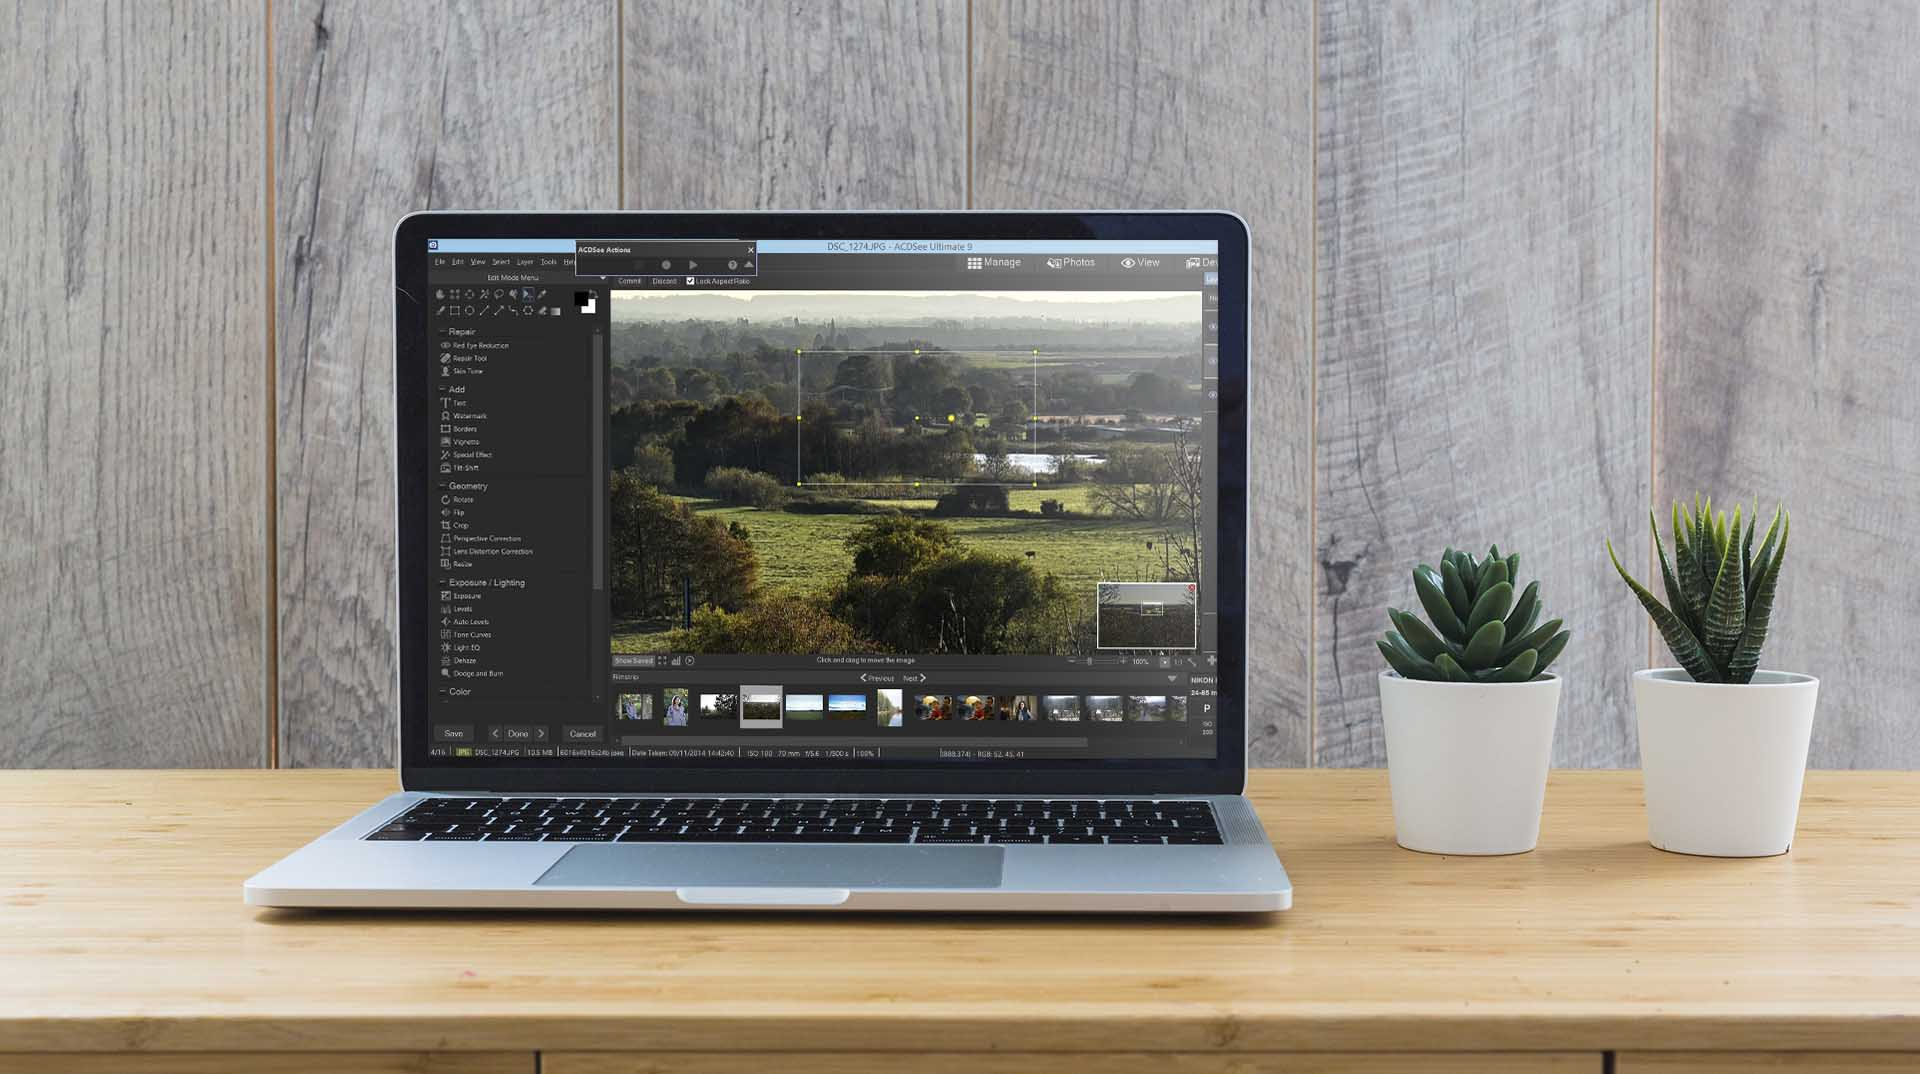 8 Best Photo Viewer for Windows 10 To Use in 2019 / 2020 – TechWafer